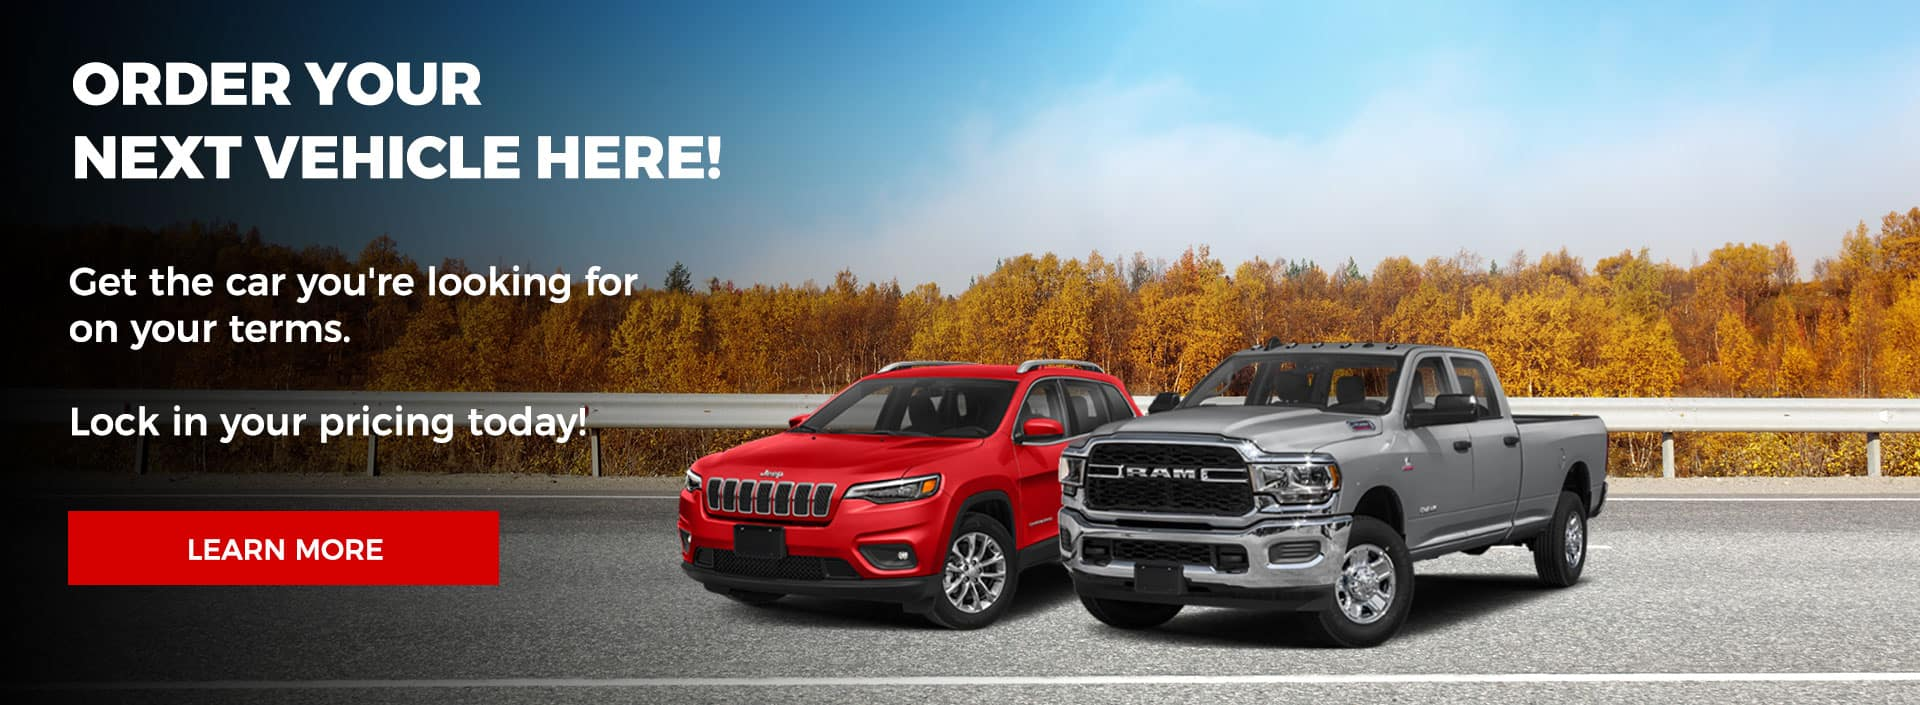 Order Your Next Vehicle Here!, Get the car you're looking for on your terms. Lock in your pricing today!